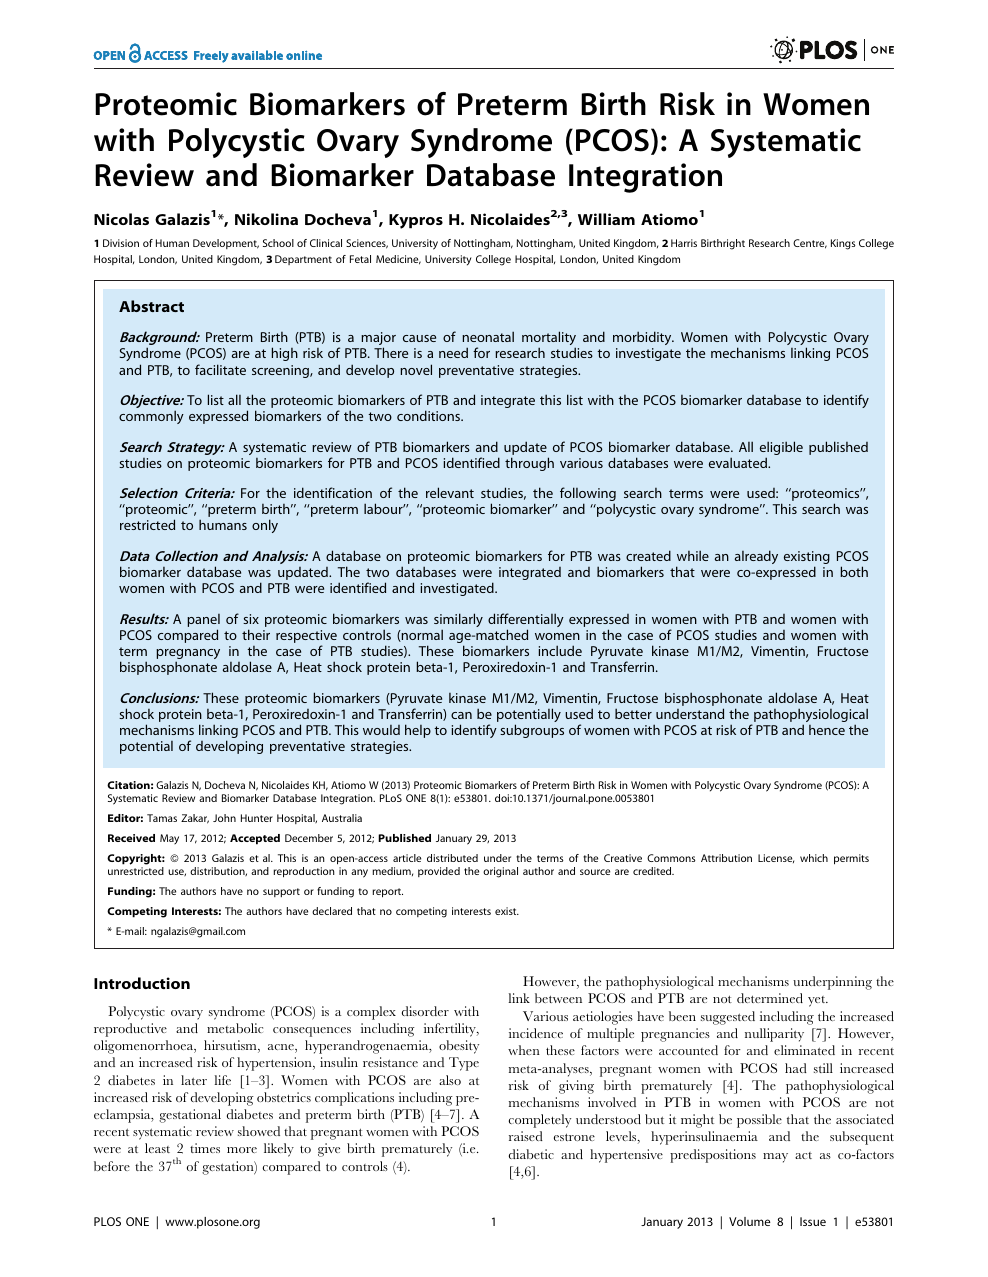 Proteomic Biomarkers of Preterm Birth Risk in Women with Polycystic Ovary  Syndrome (PCOS): A Systematic Review and Biomarker Database Integration –  topic of research paper in Clinical medicine. Download scholarly article PDF